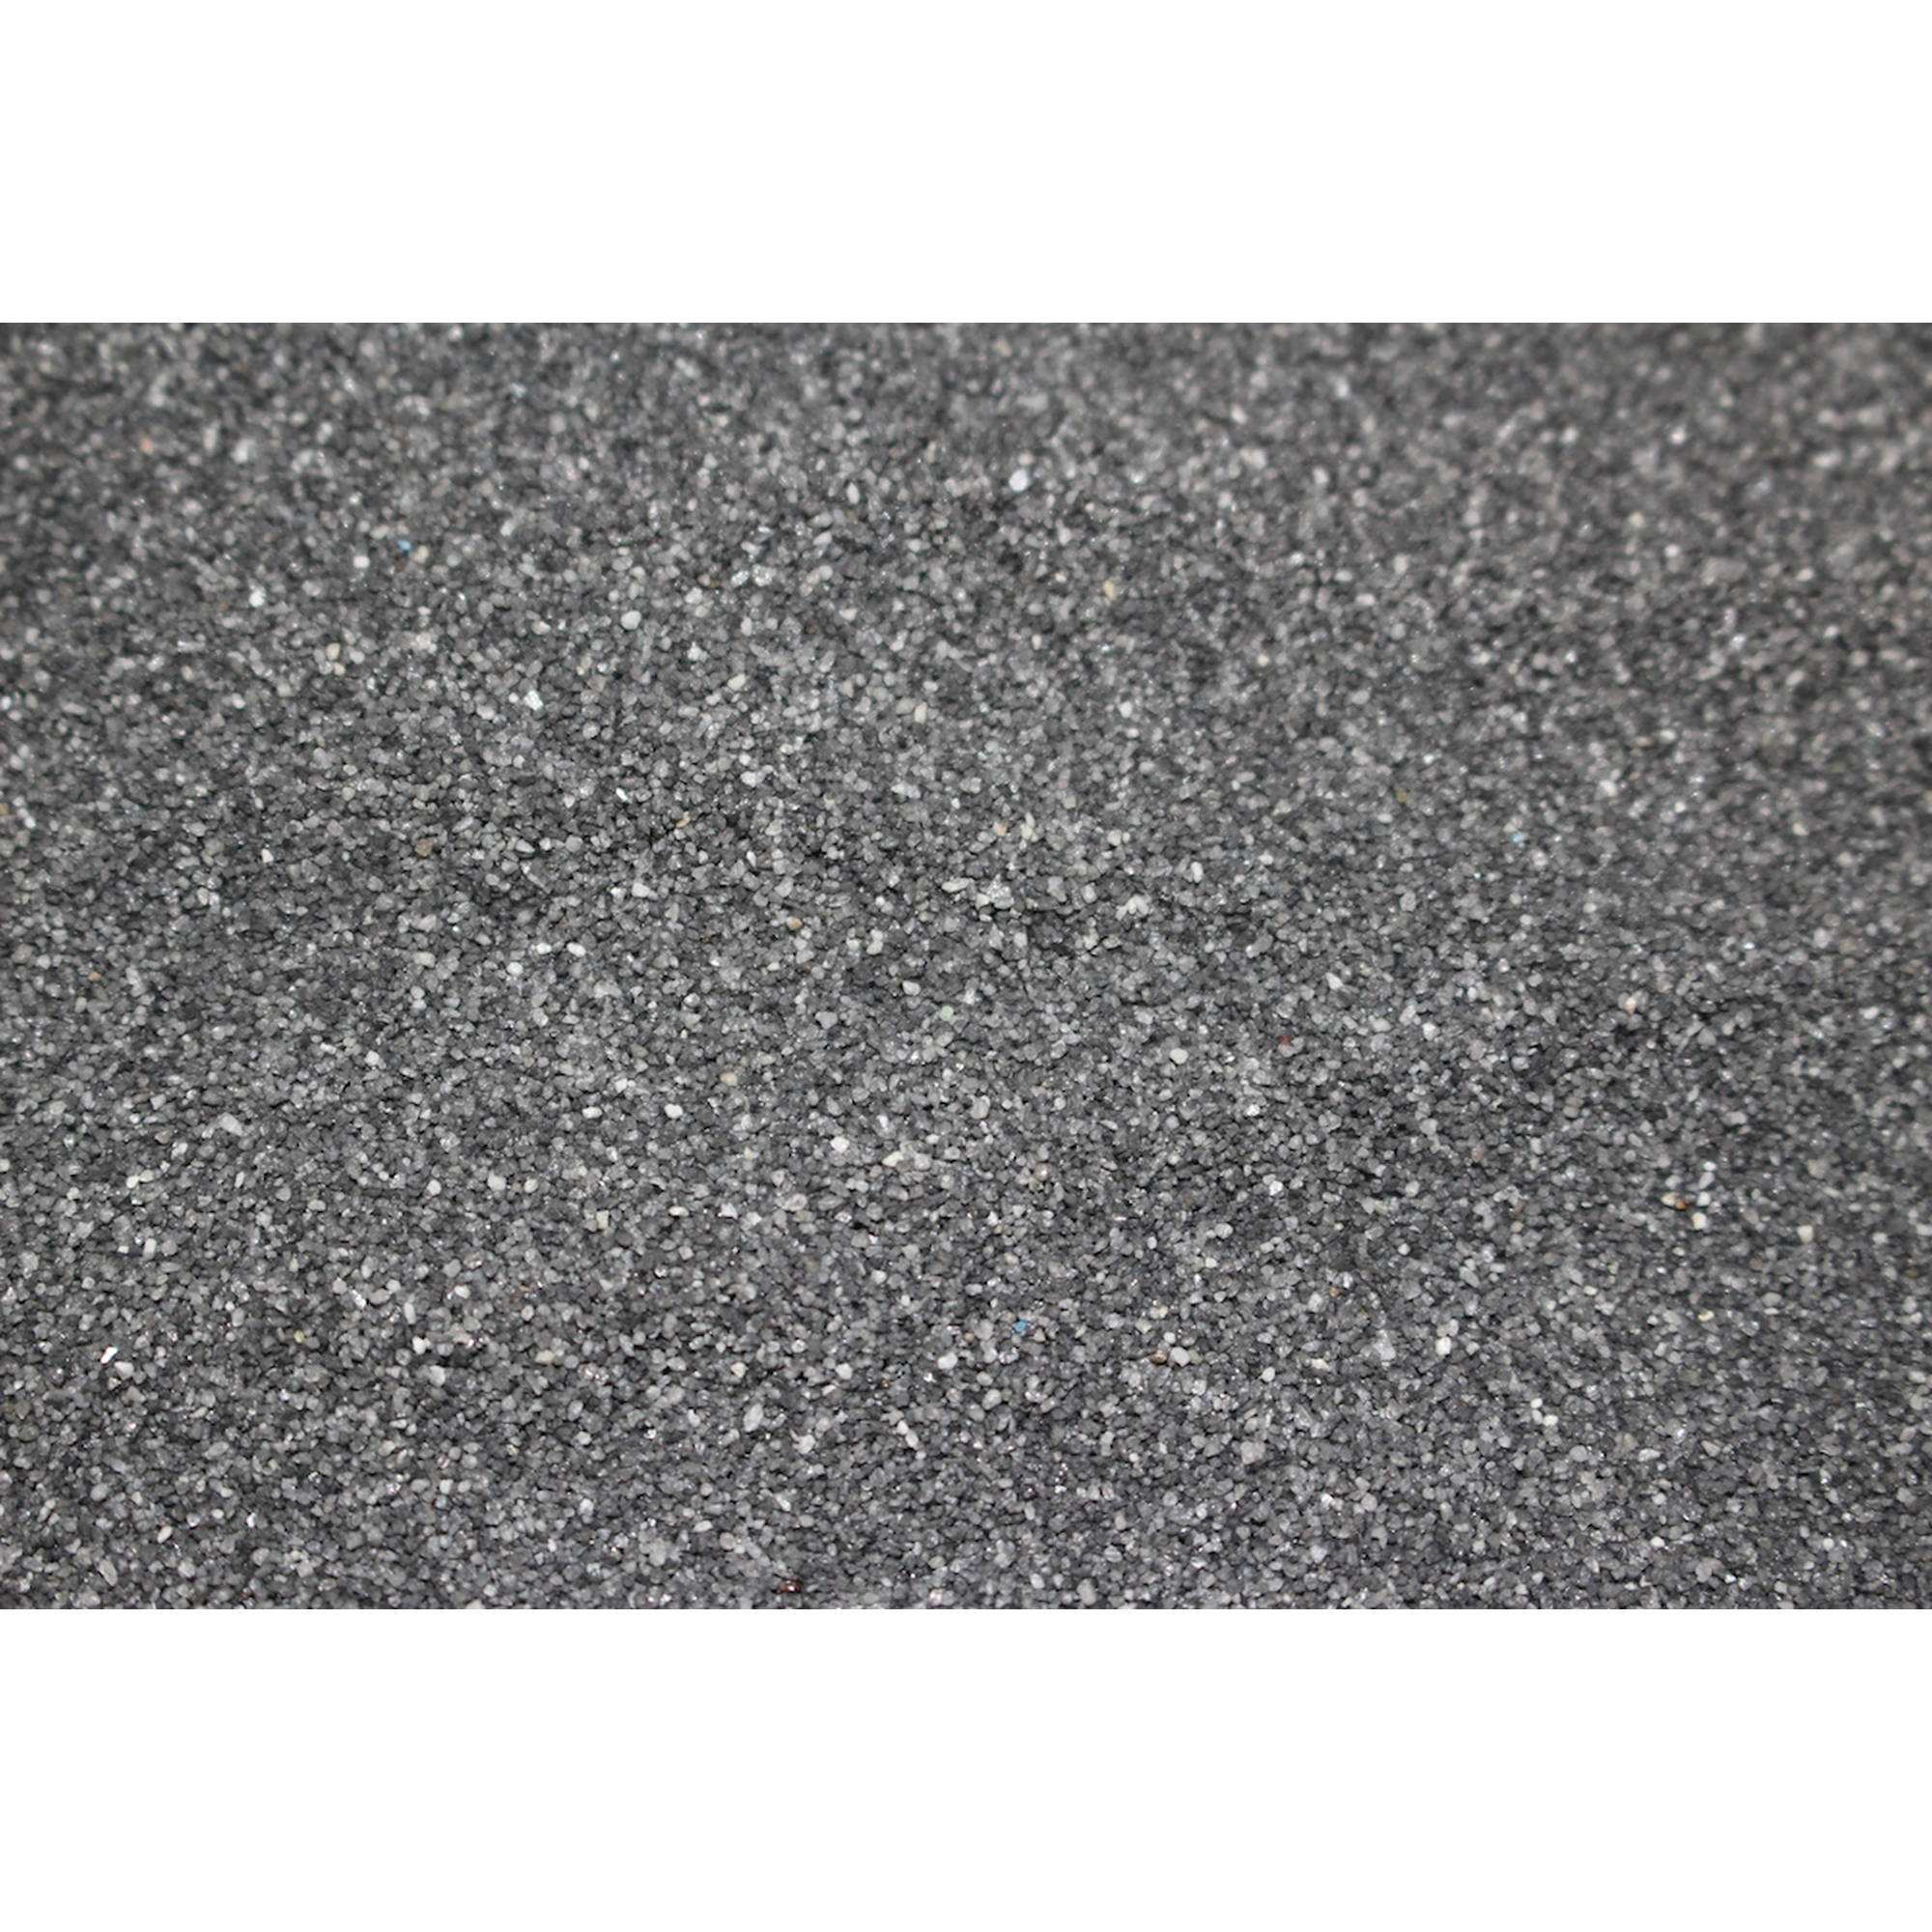 Exotic Pebbles and Aggregates EPS-02 5 lb Black Sand